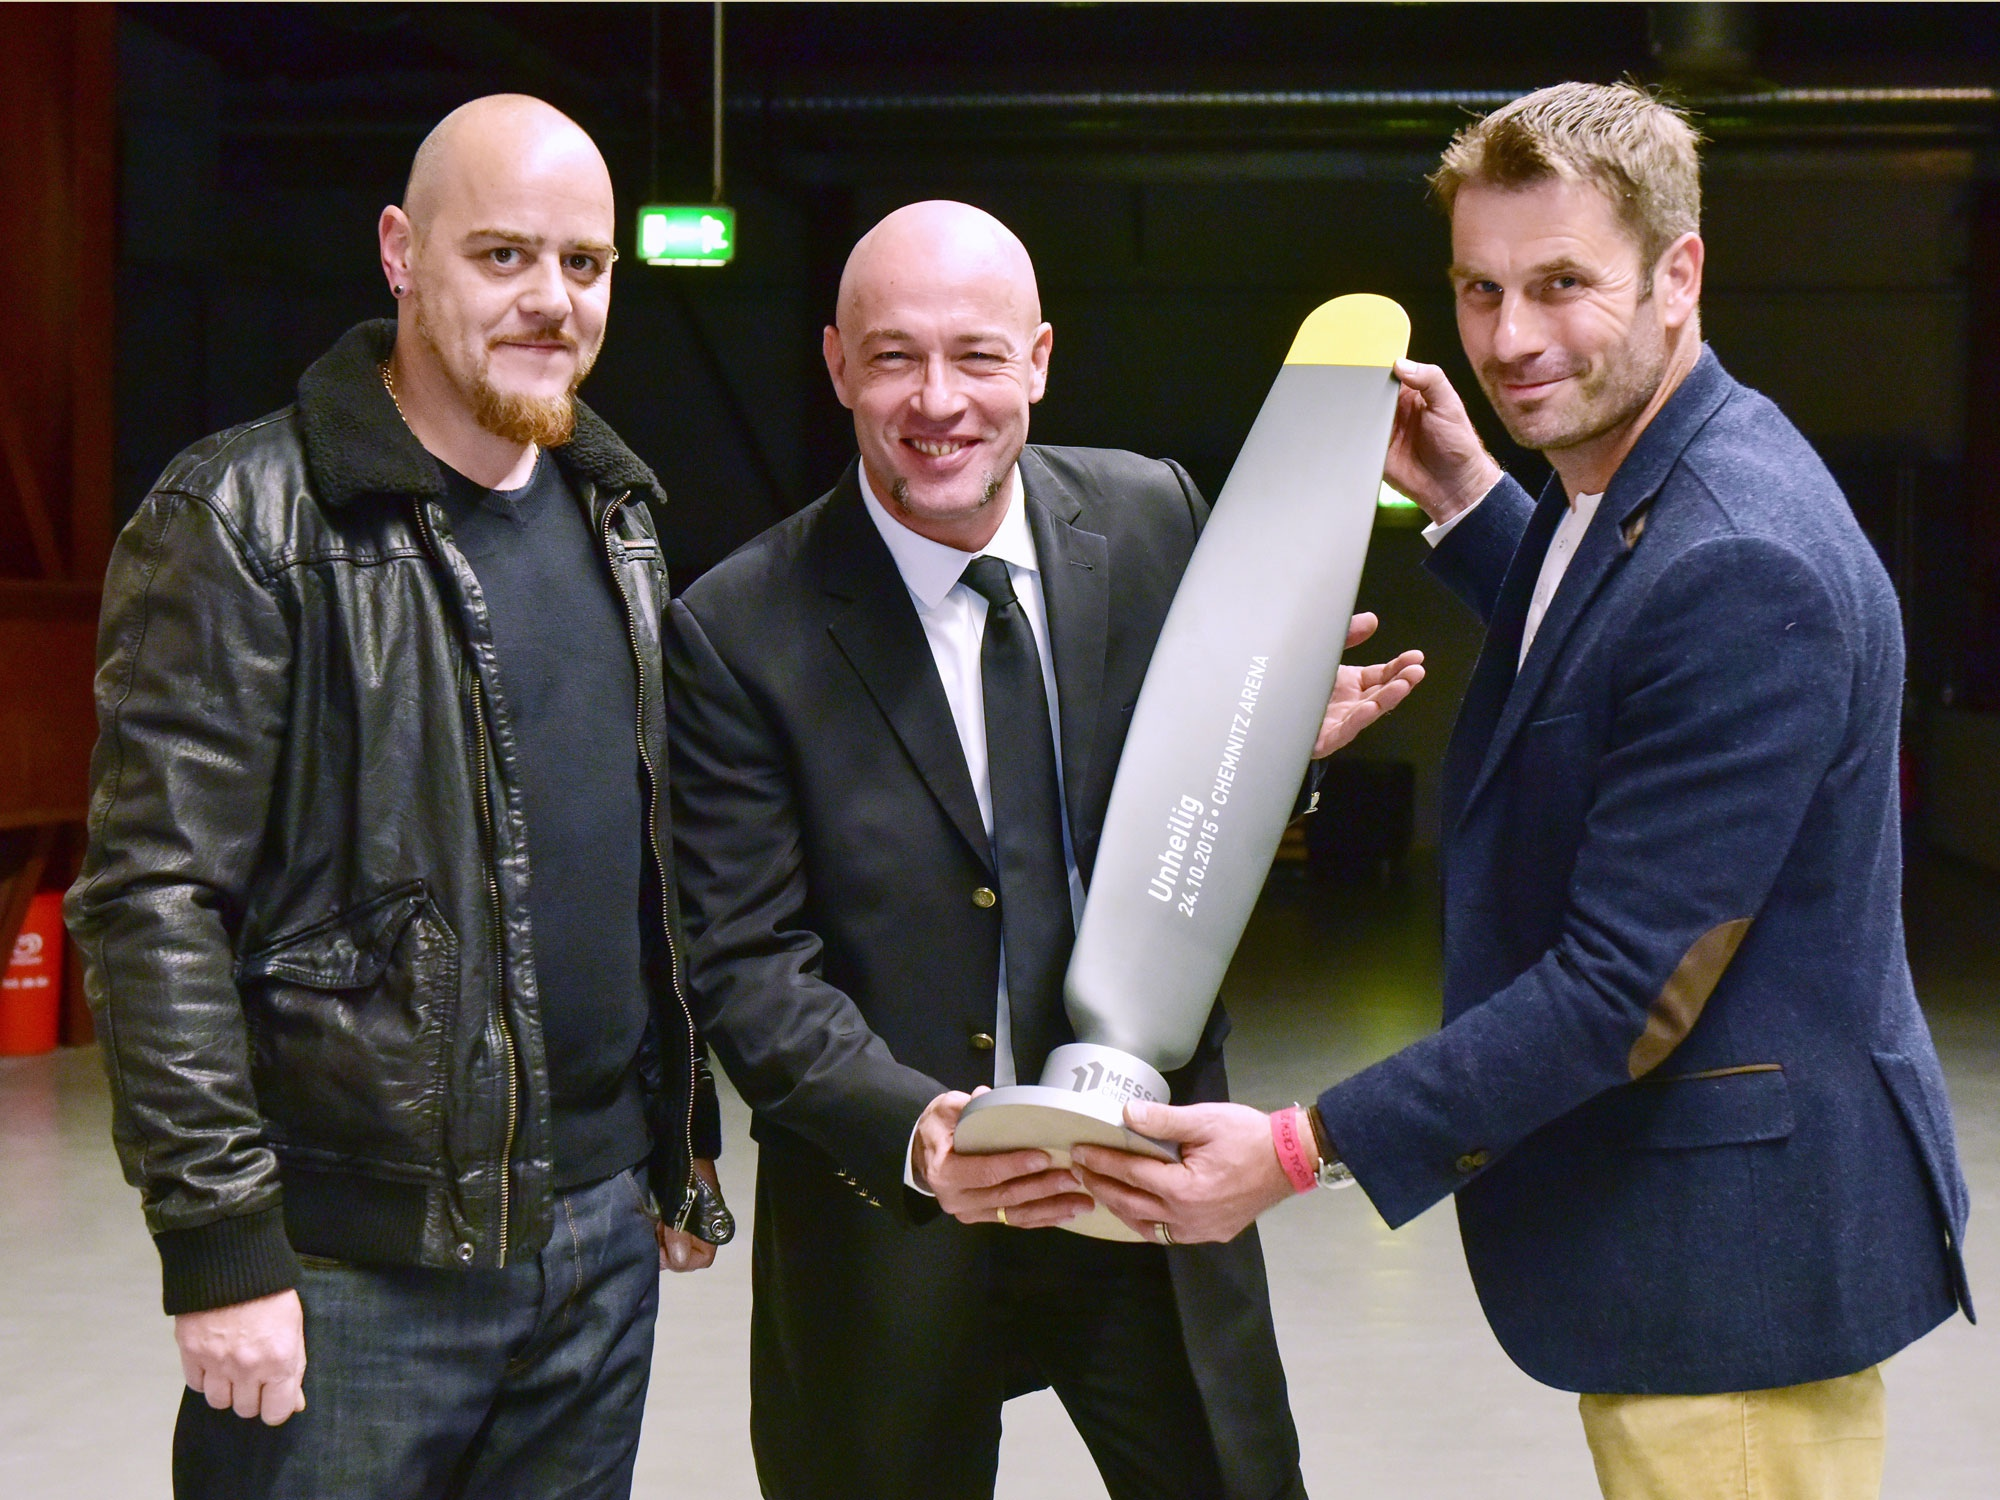 unheilig_sold-out-award_messe-chemnitz